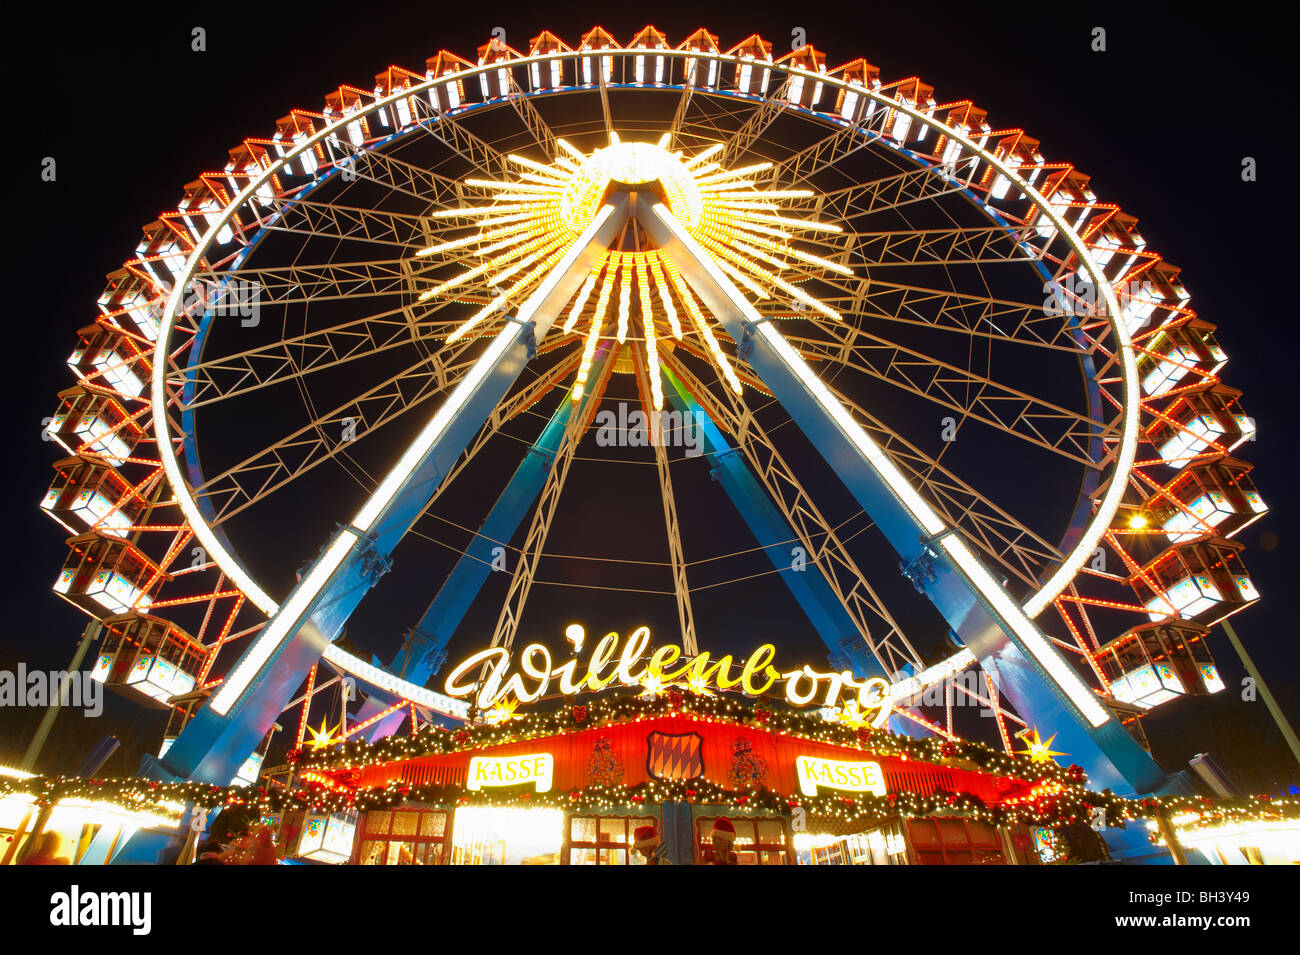 Christmas Markets Alexanderplatz Berlin Germany - Stock Image